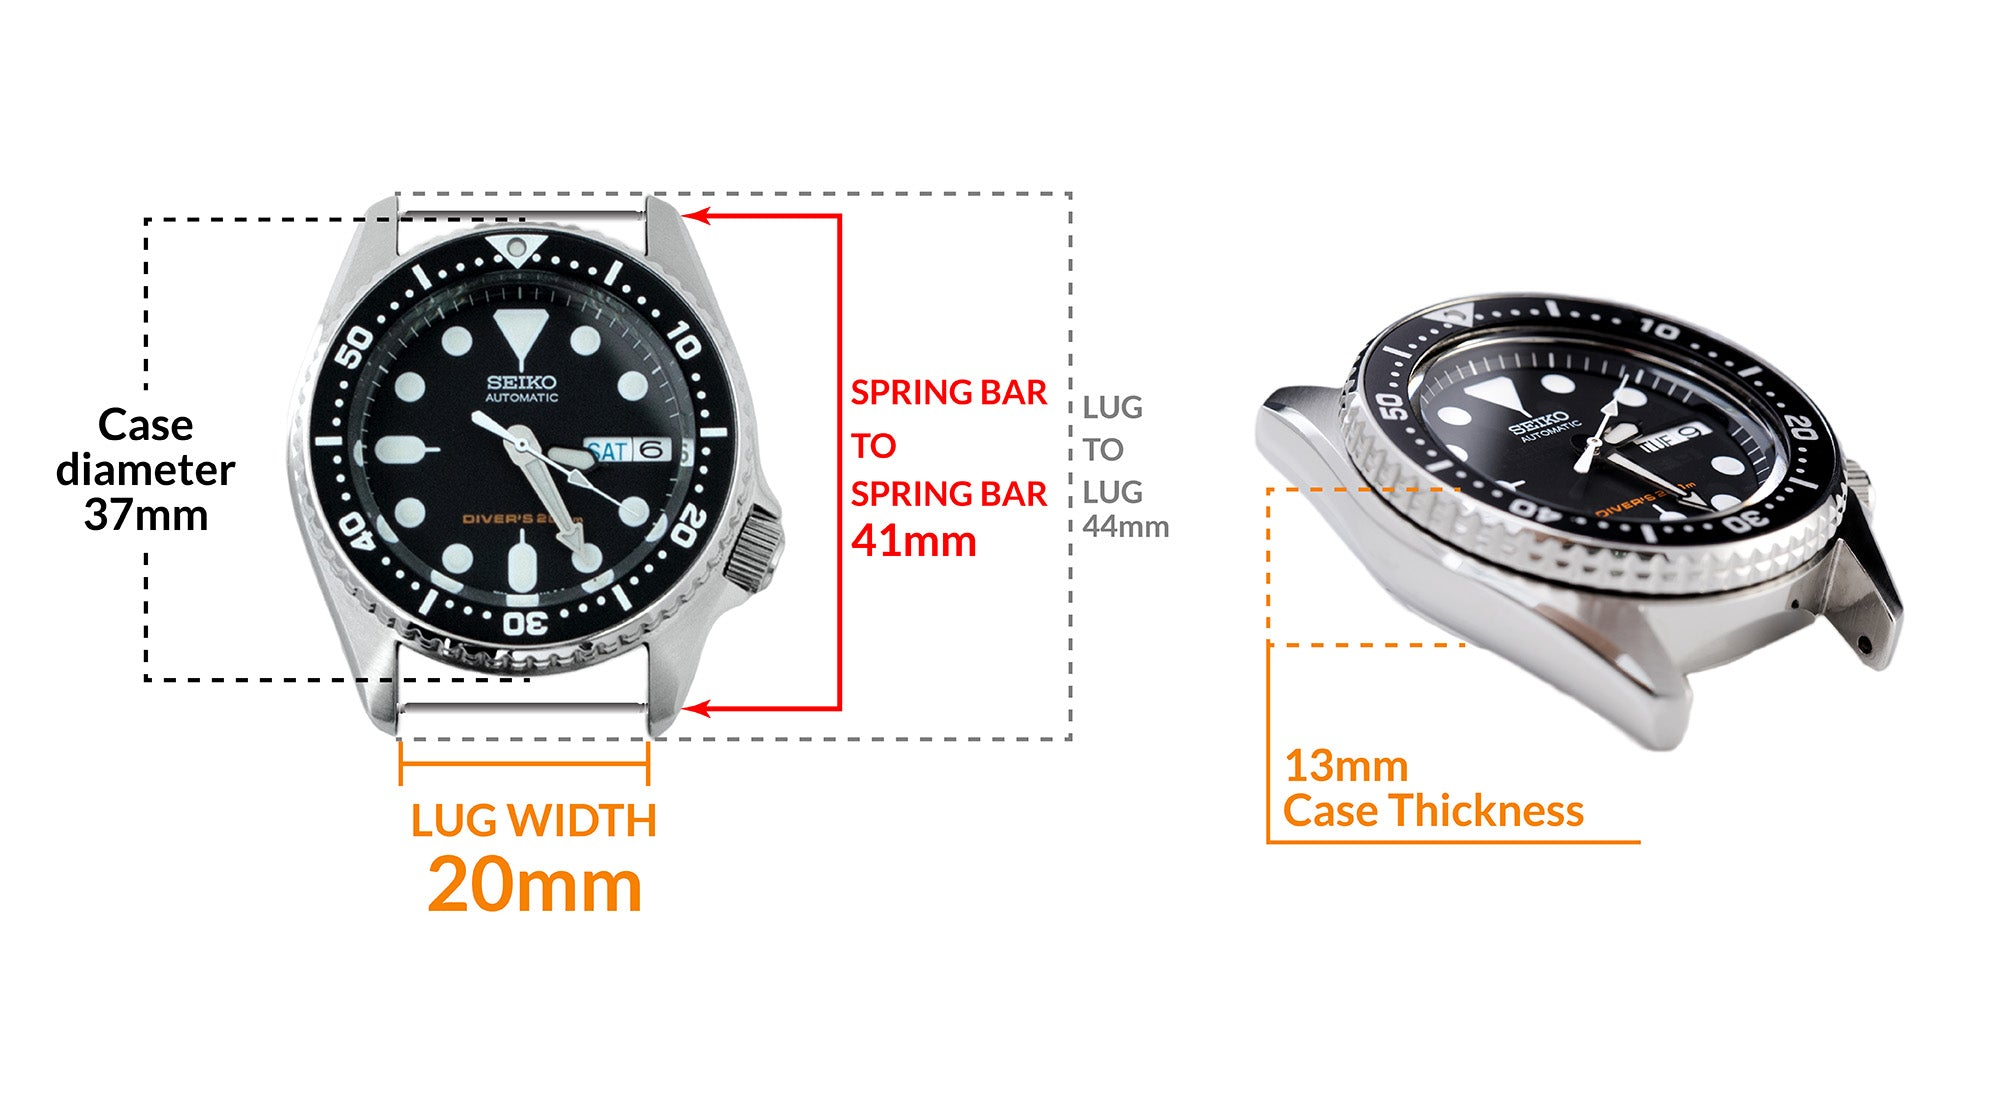 Seiko SKX013 Midsize Diver - Details Seiko watch size, Lug width and case dimensions